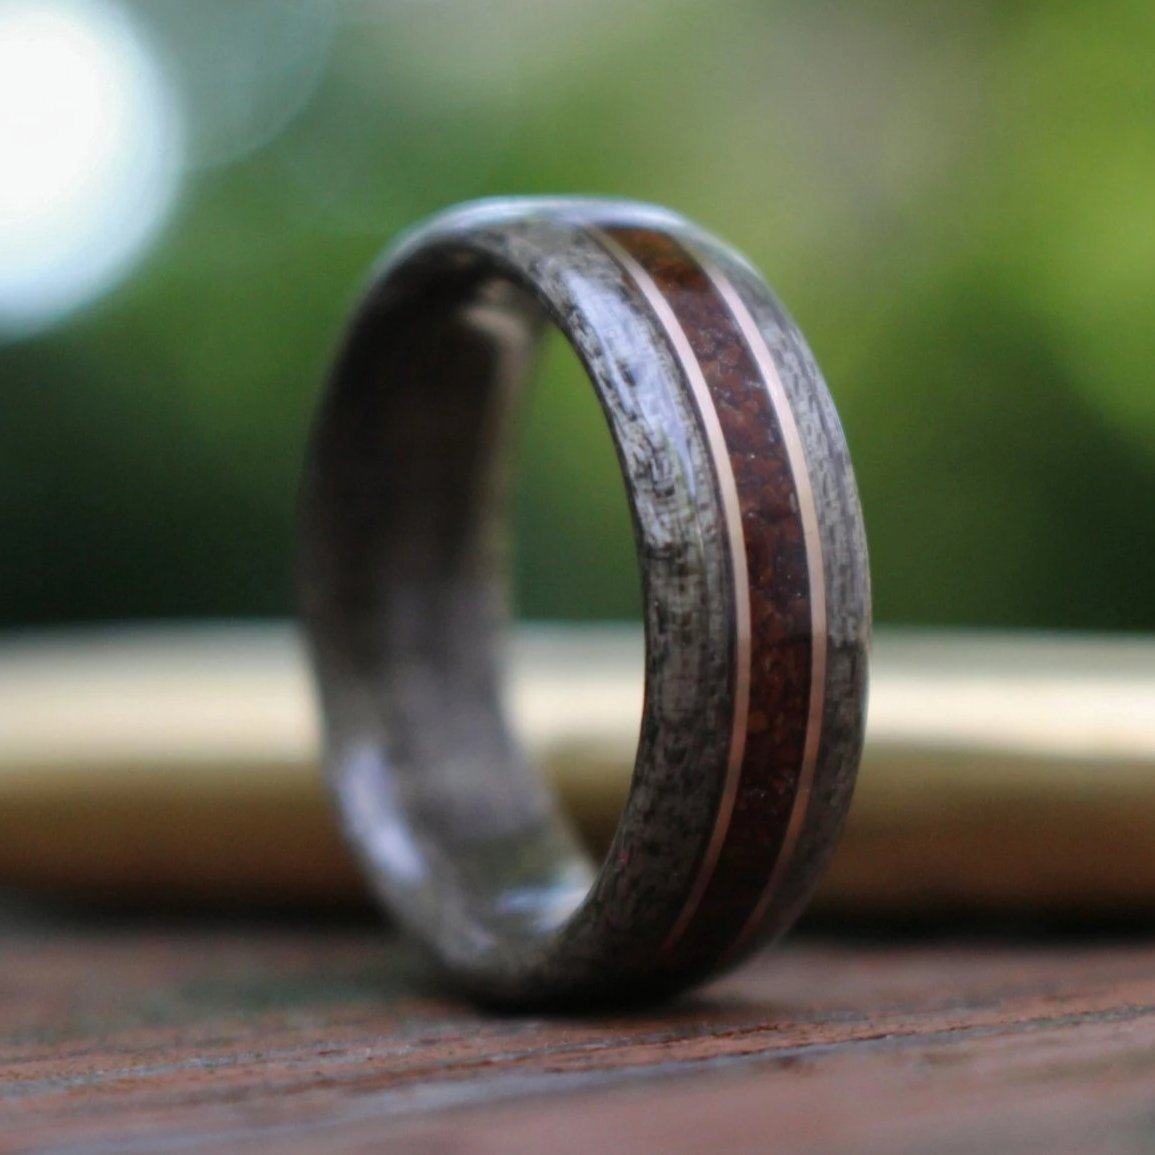 In-Stock Ring - (In-Stock) Weathered Maple & Coffee W/Dual Bronze - Size 6.75/9mm Wide